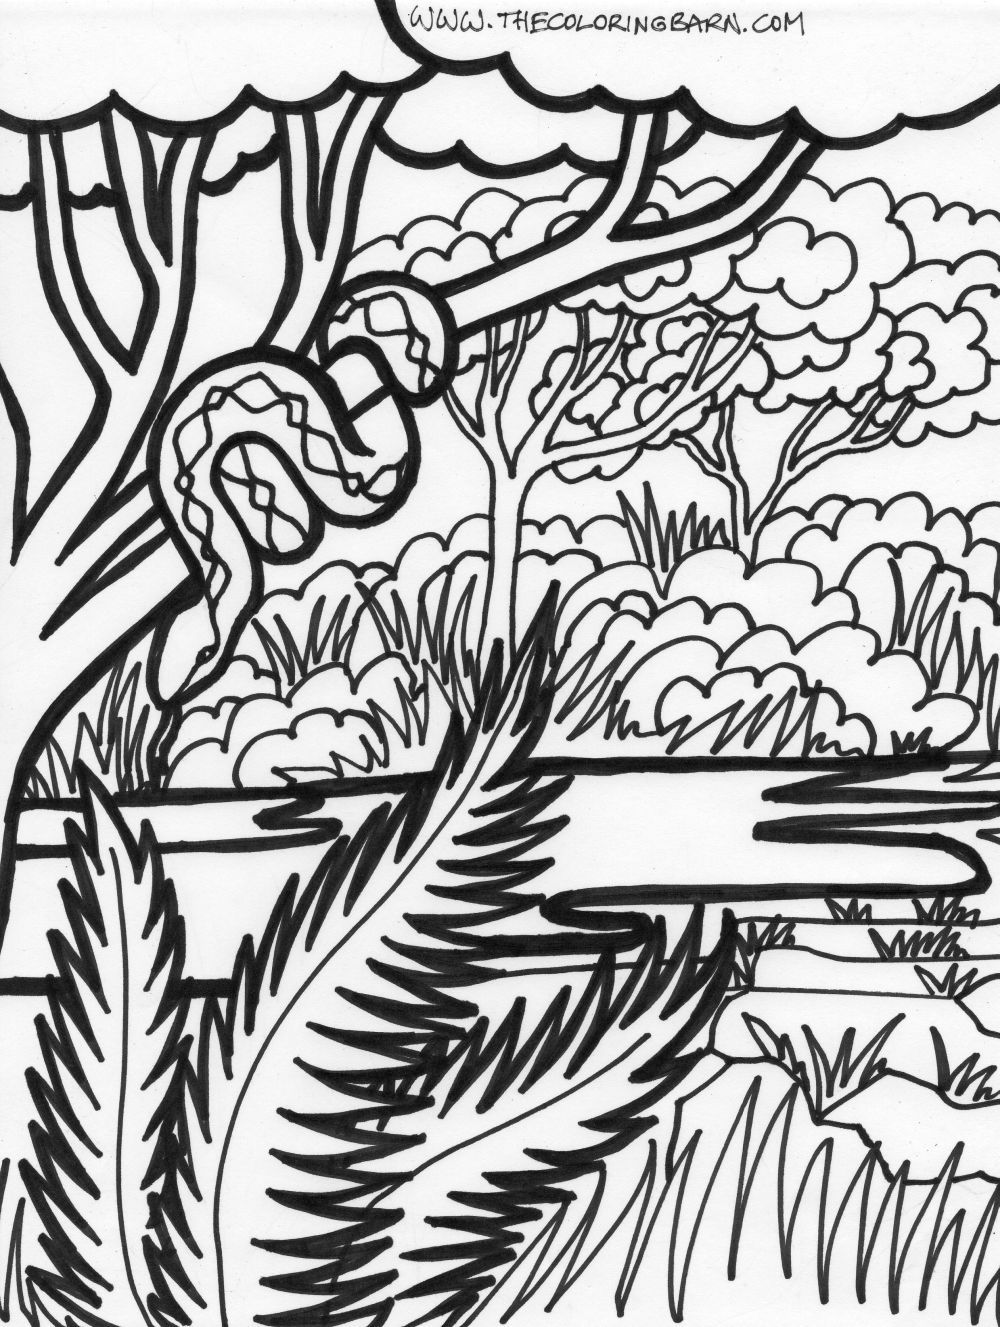 JUNGLE COLORING SHEETS | coloring page jungle scene coloring page ...